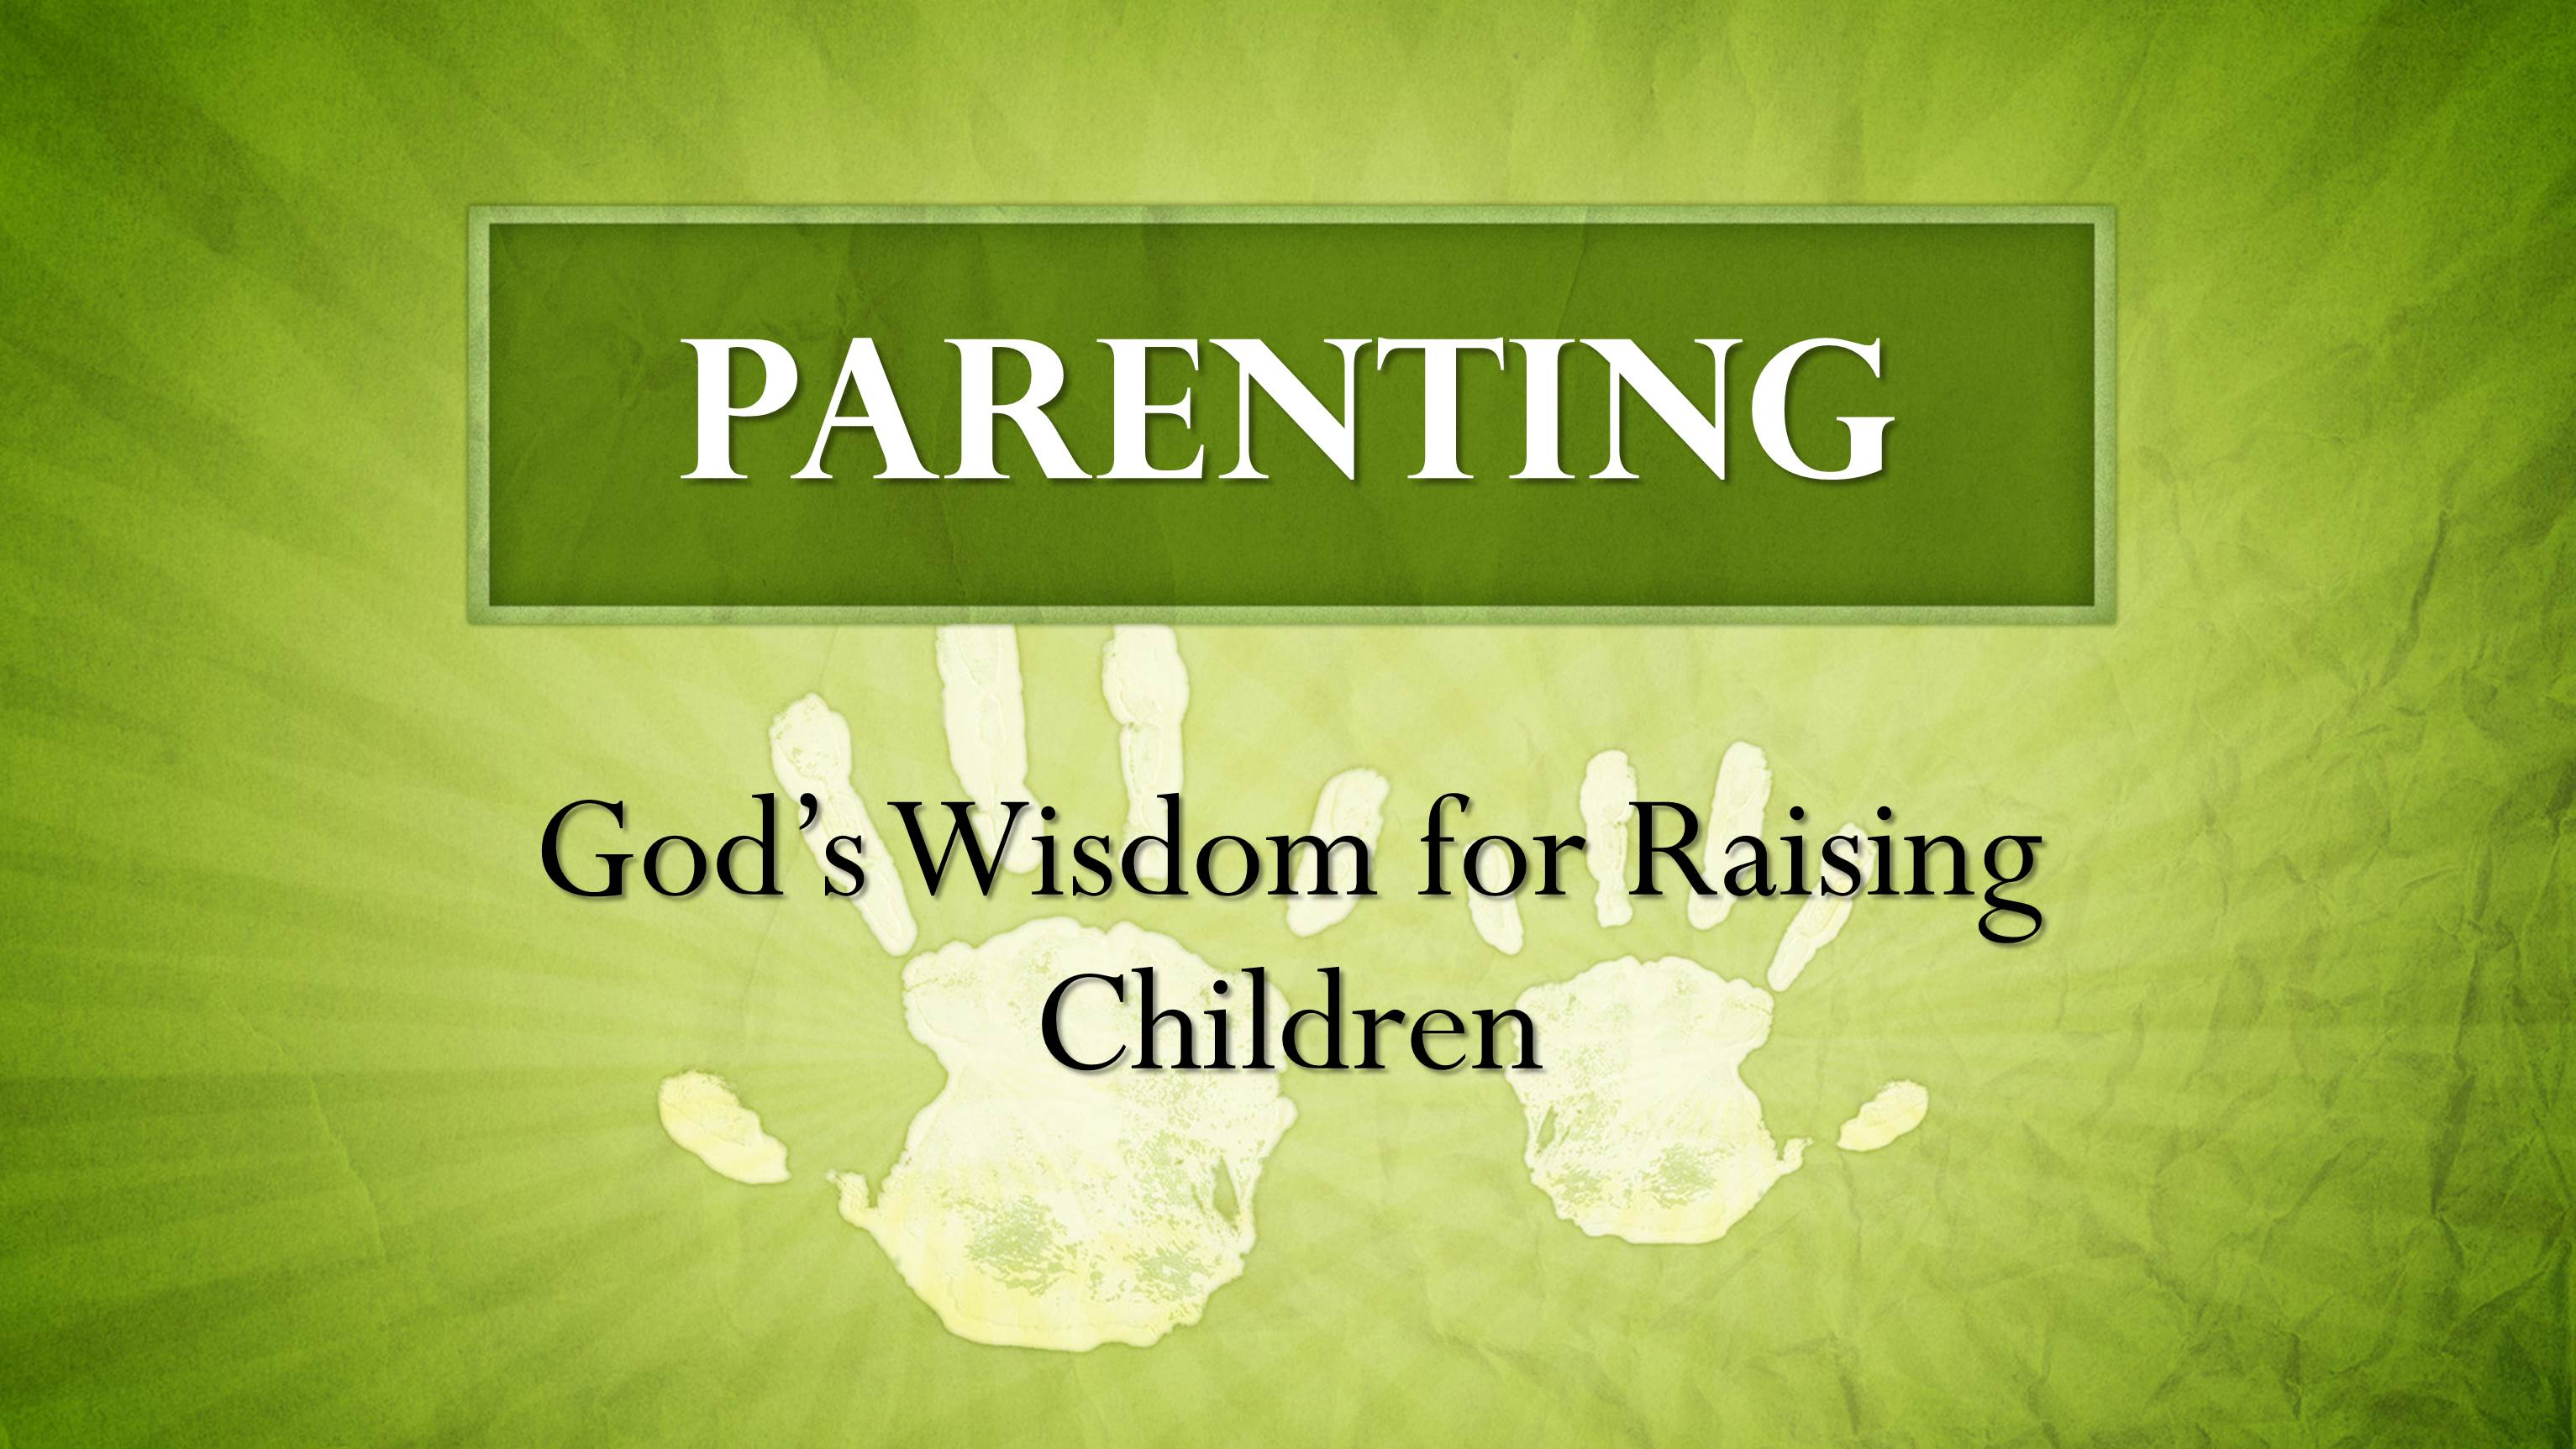 Parenting – God's Wisdom for Raising Children (9/24/17)